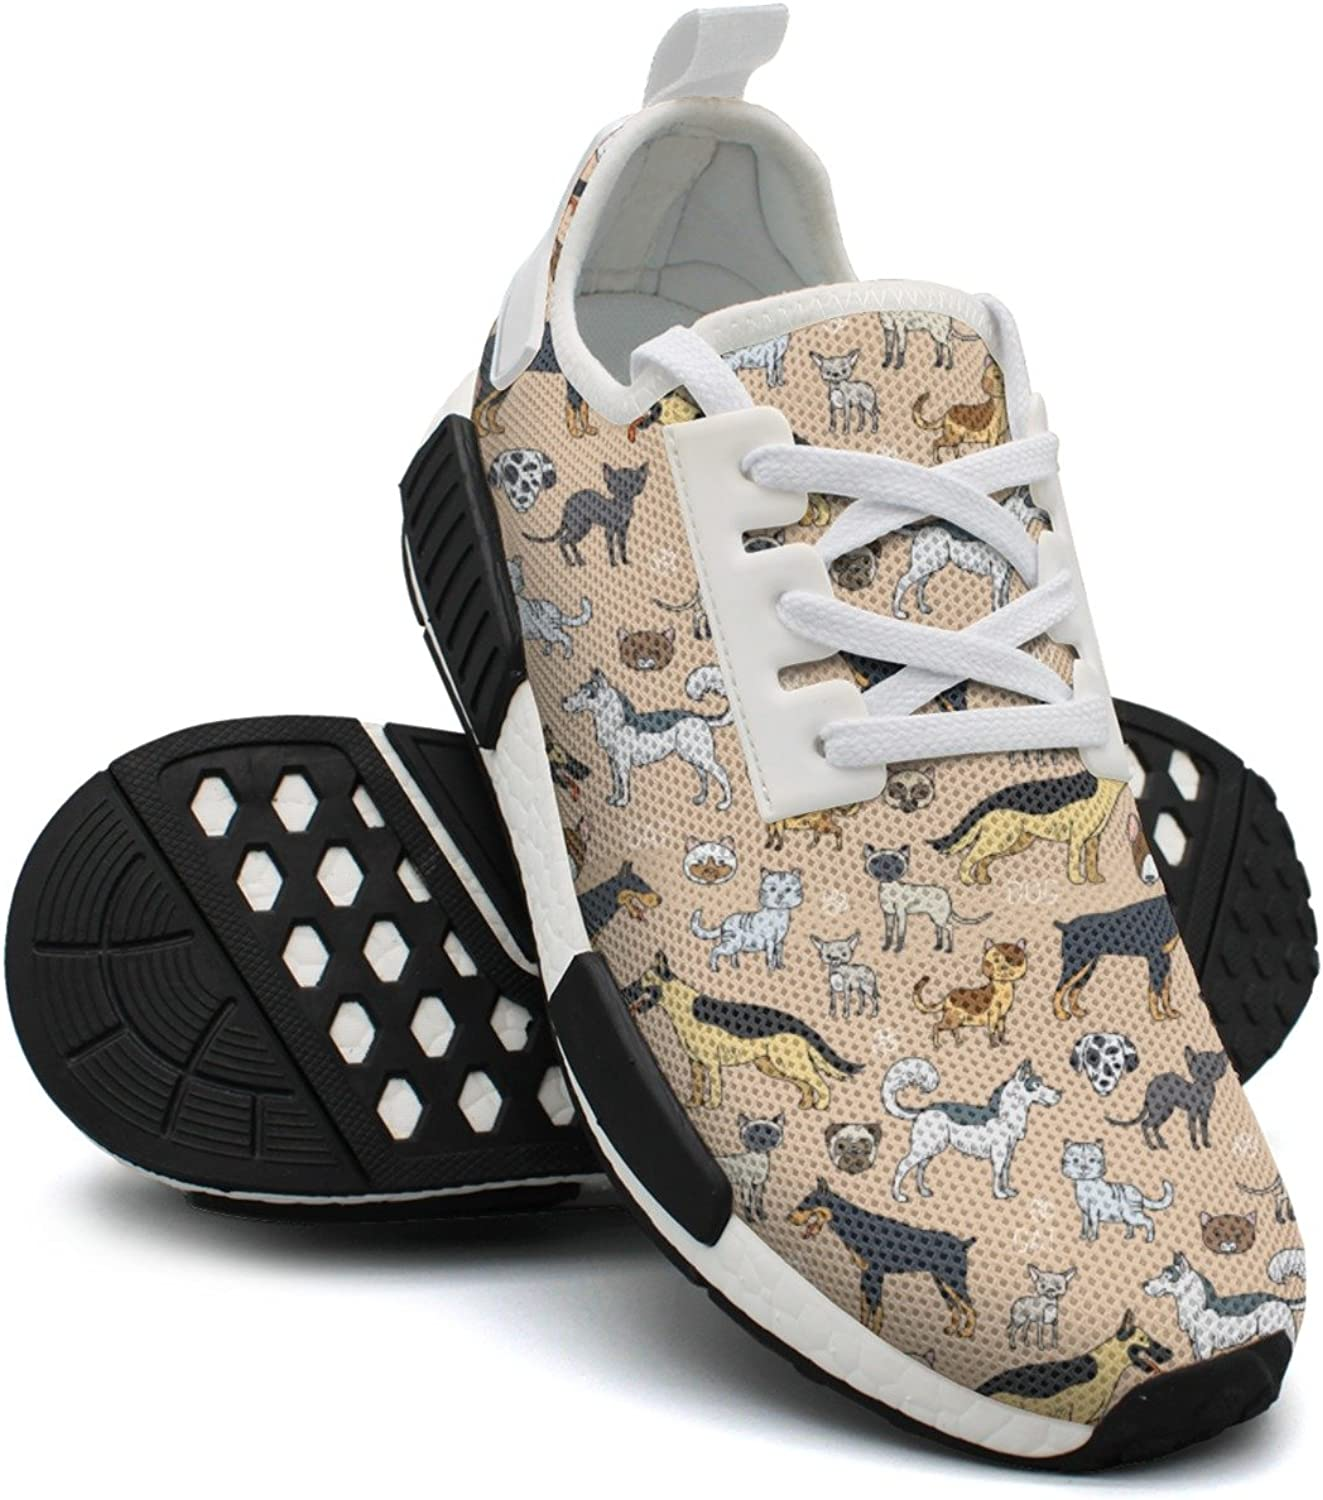 Cute Cats And Dogs colorful Running shoes Womens Nmd Casual Sport shoes